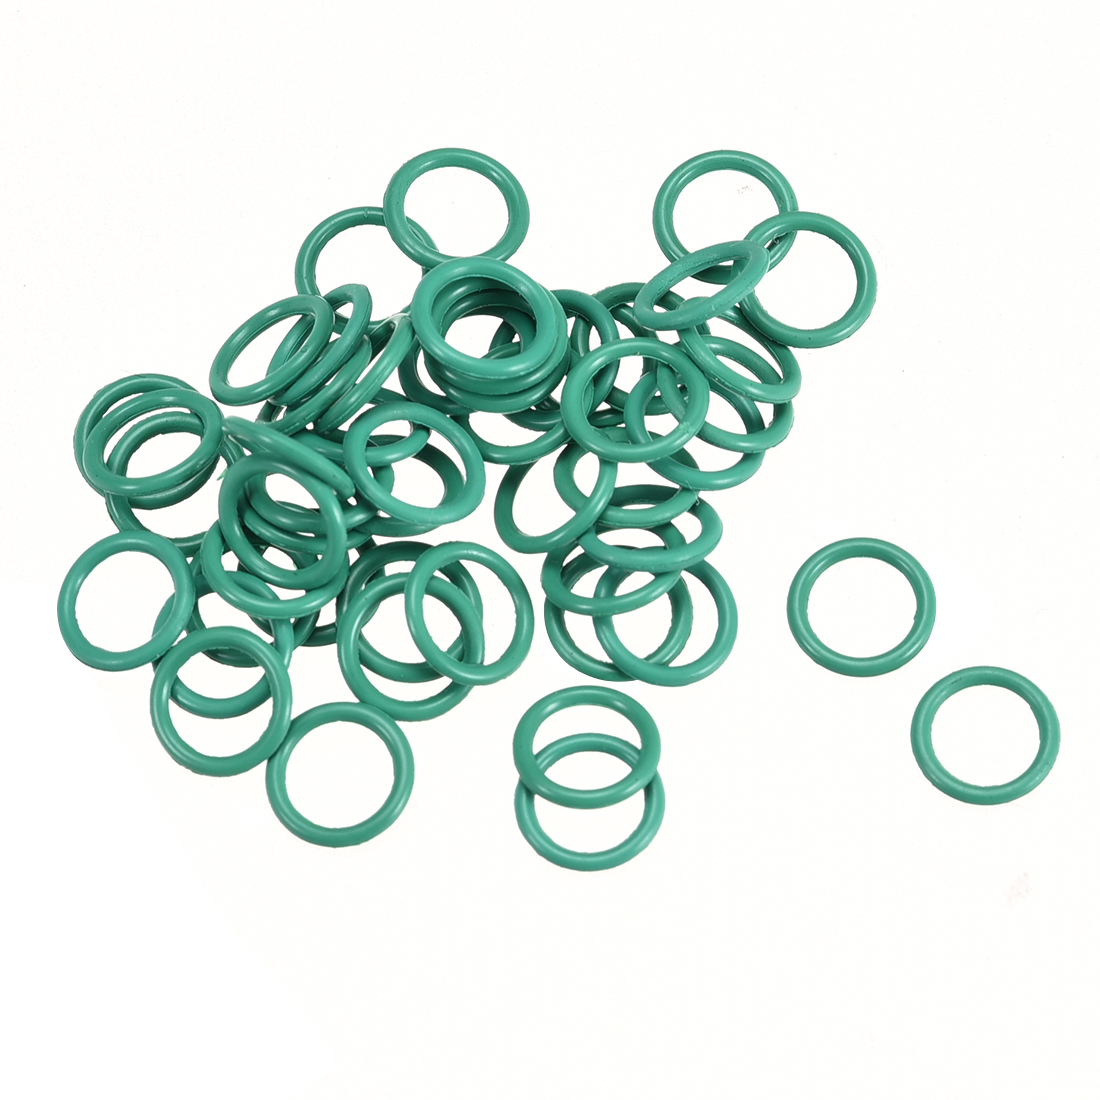 50Pcs 7mm x 1mm Nitrile Rubber O Ring FKM Heat Resistant Sealing Grommets Green